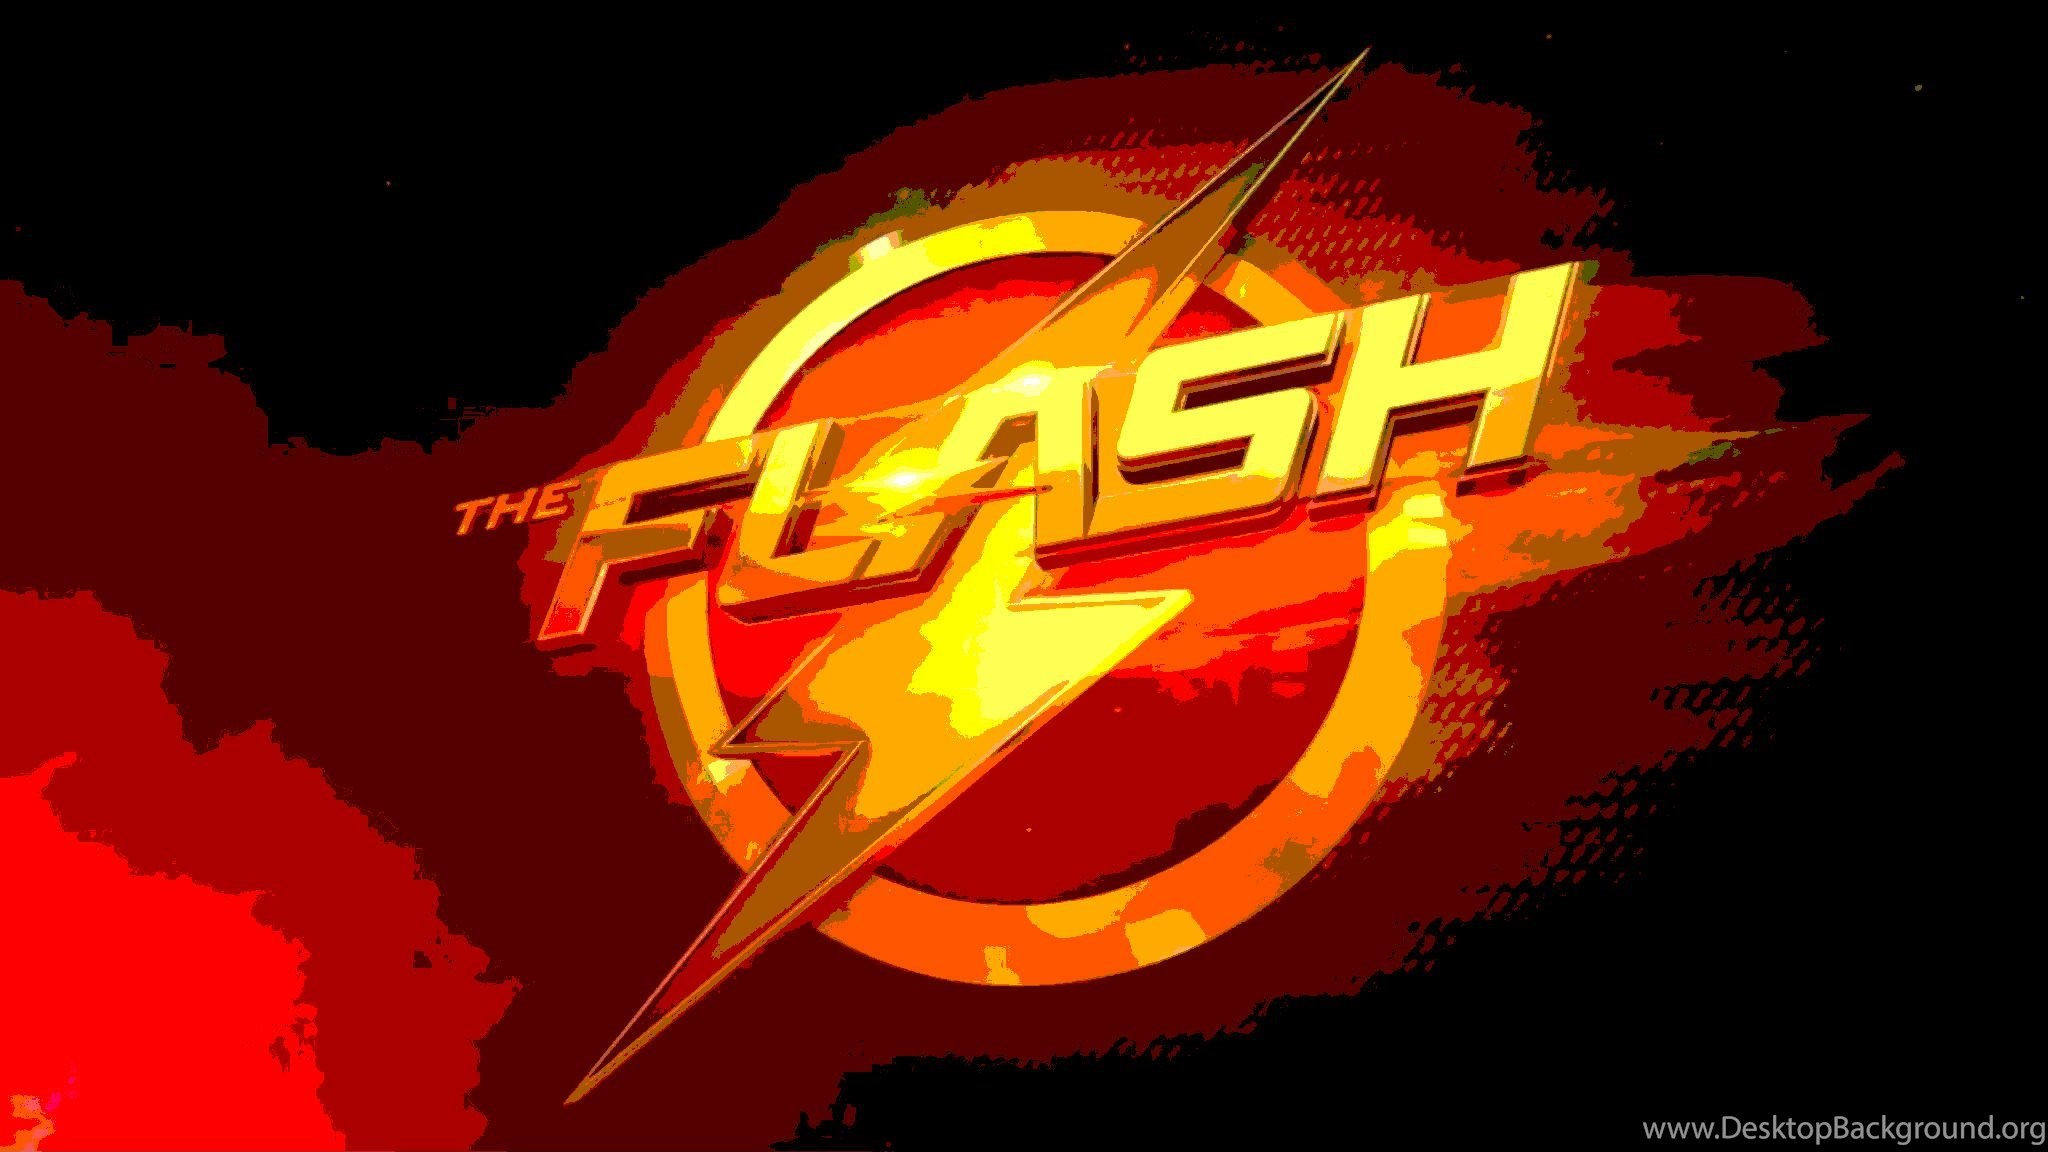 The Flash Dc Comics D C Superhero Wallpapers Desktop Background